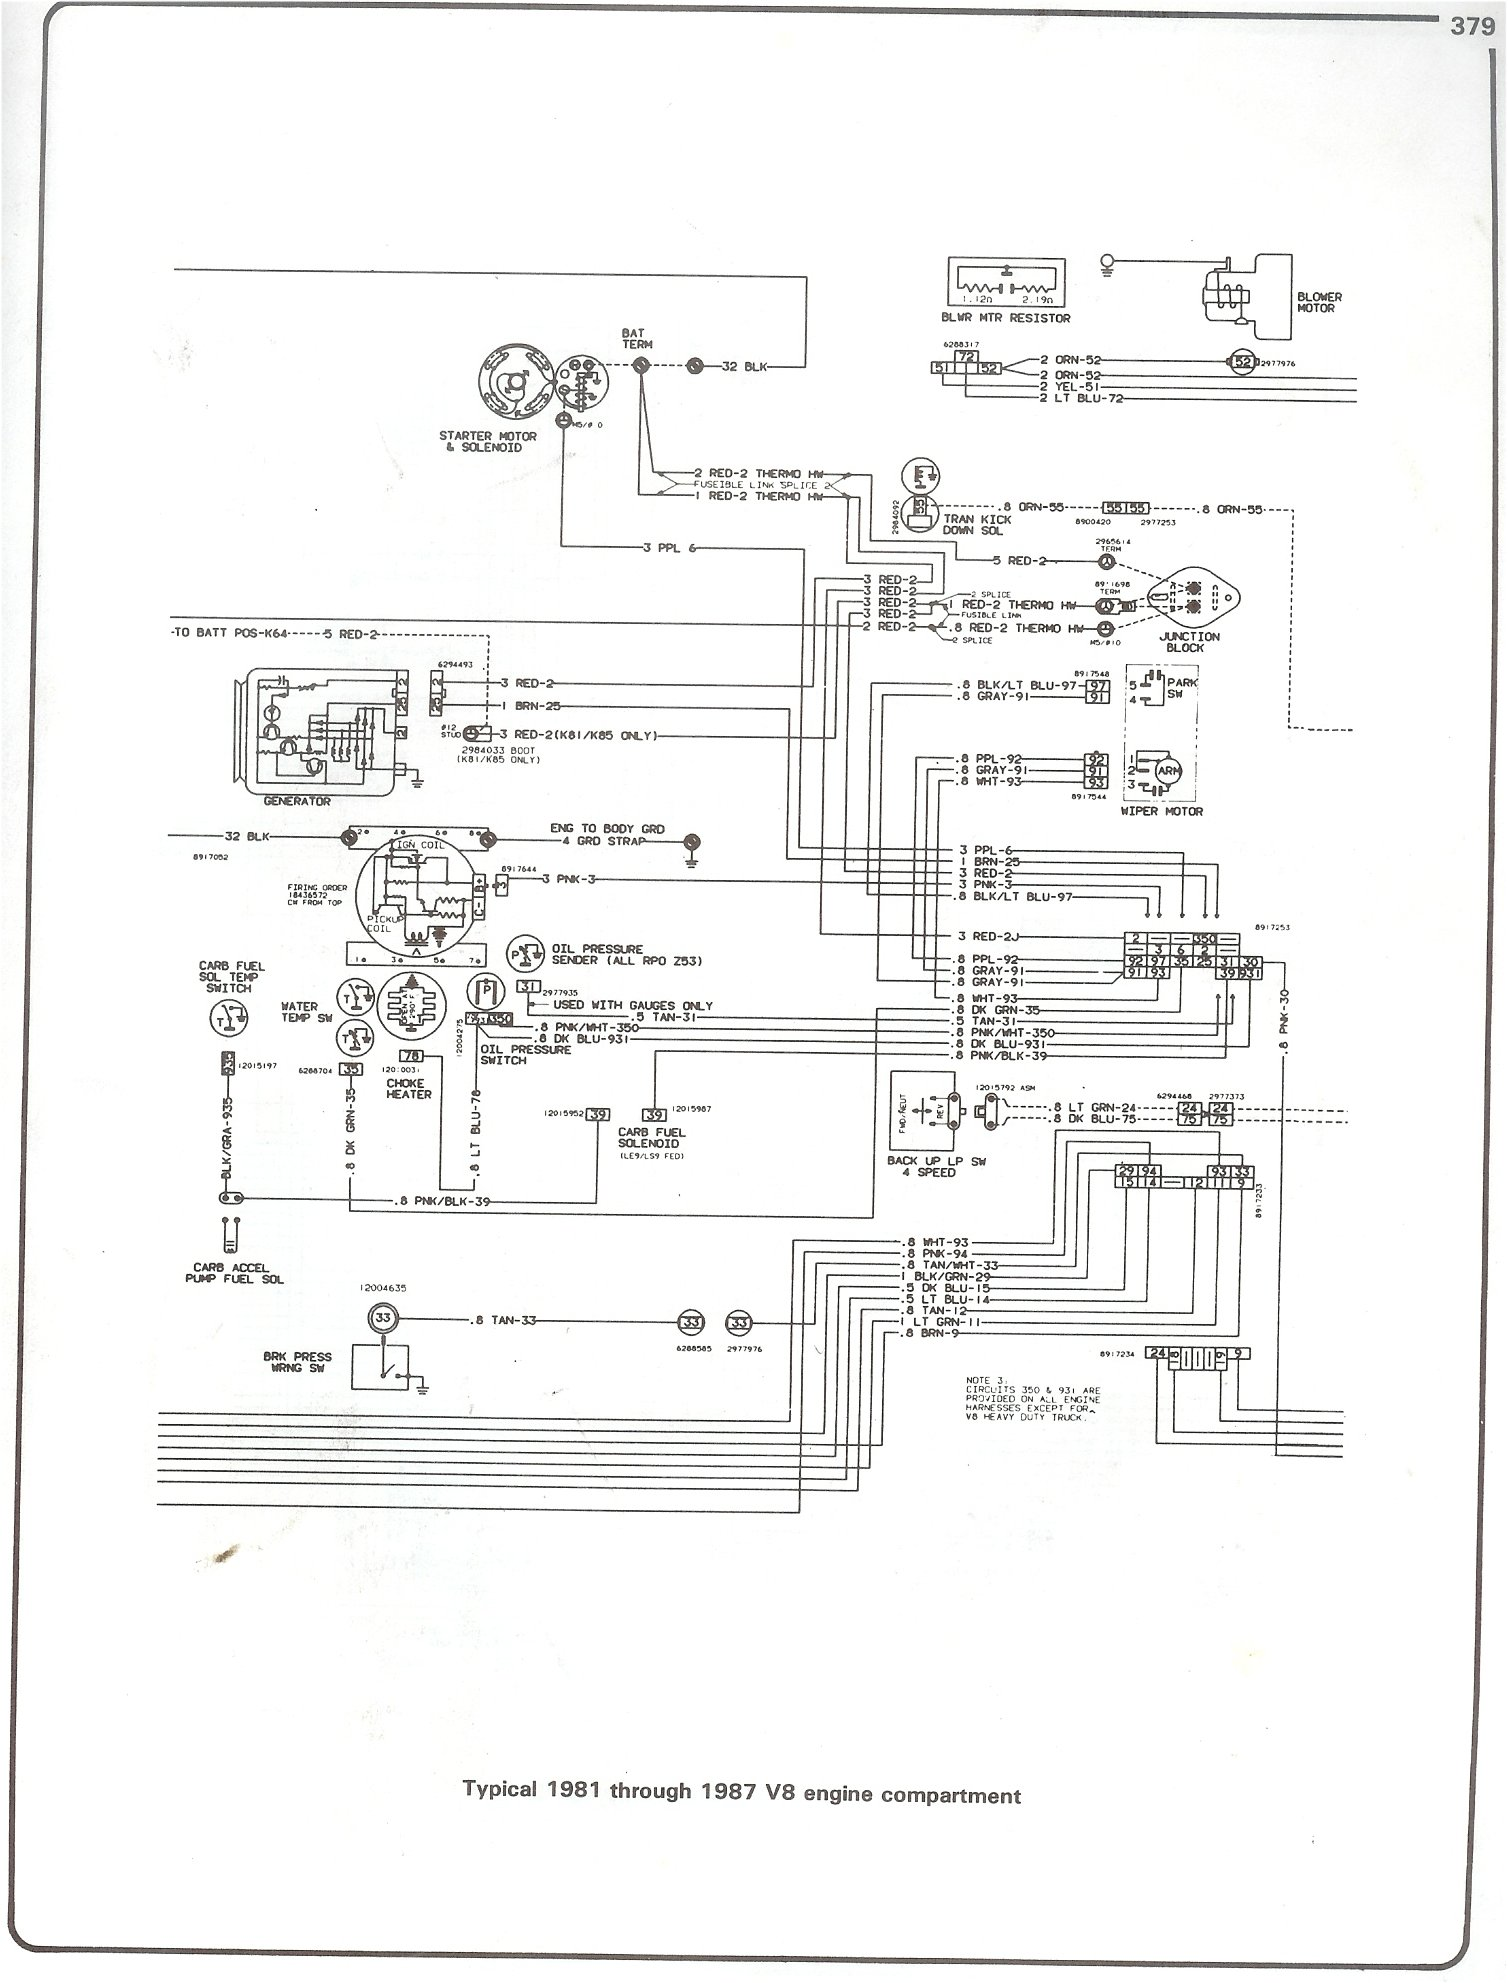 81 87_V8_engine complete 73 87 wiring diagrams 1975 c10 wiring diagram at cos-gaming.co